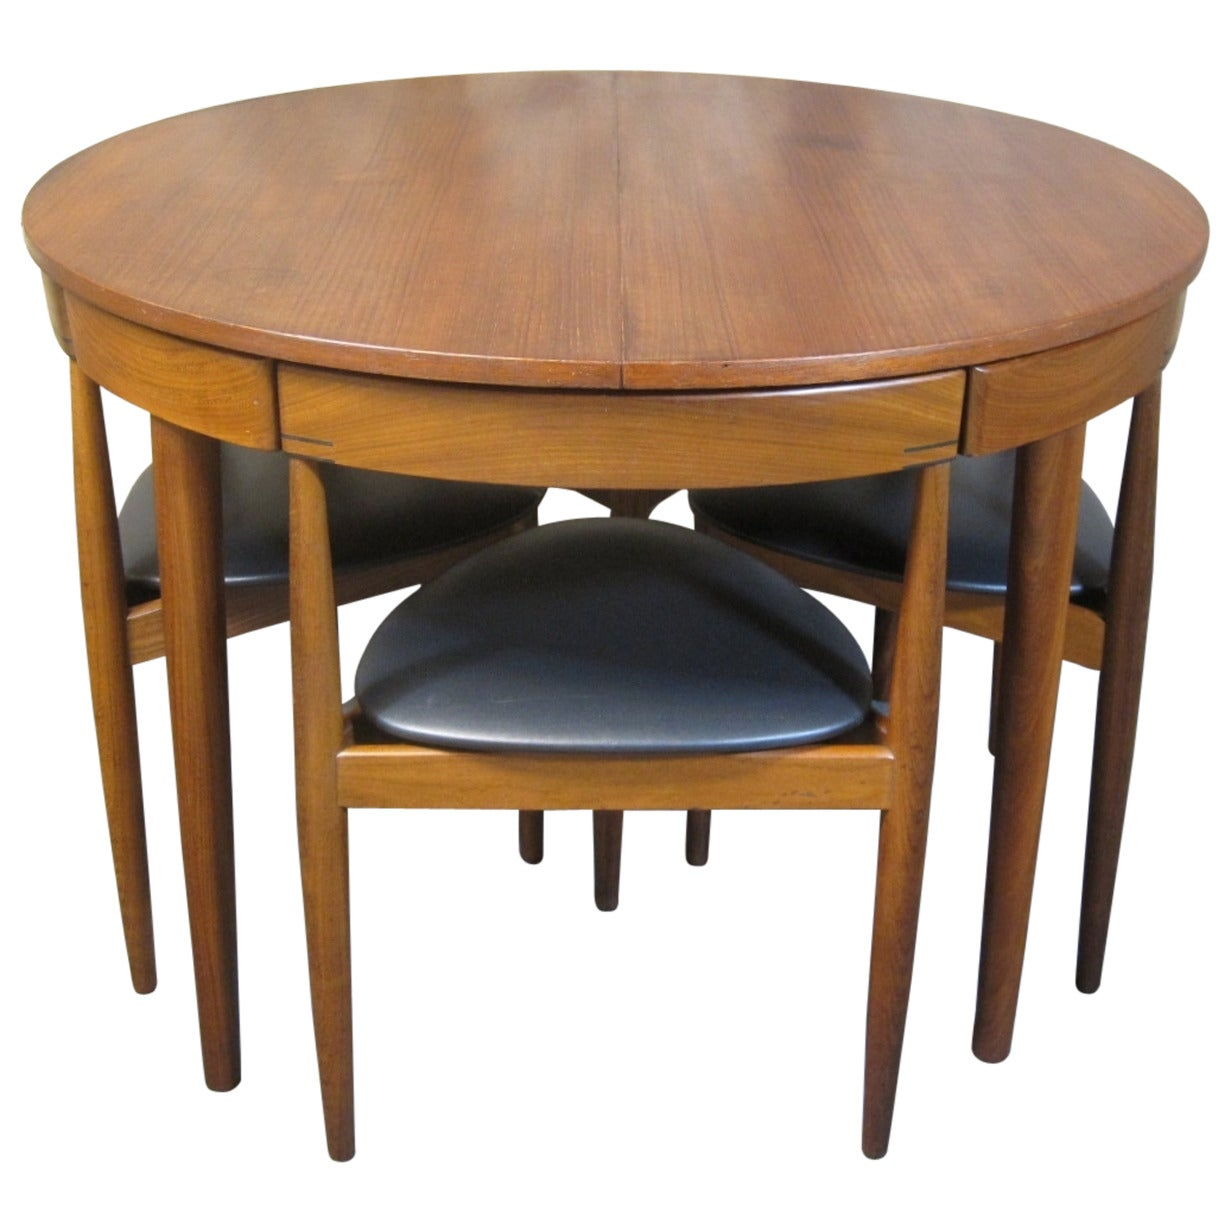 Hans olsen for frem rojle teak dining table and chairs for Modern dining table